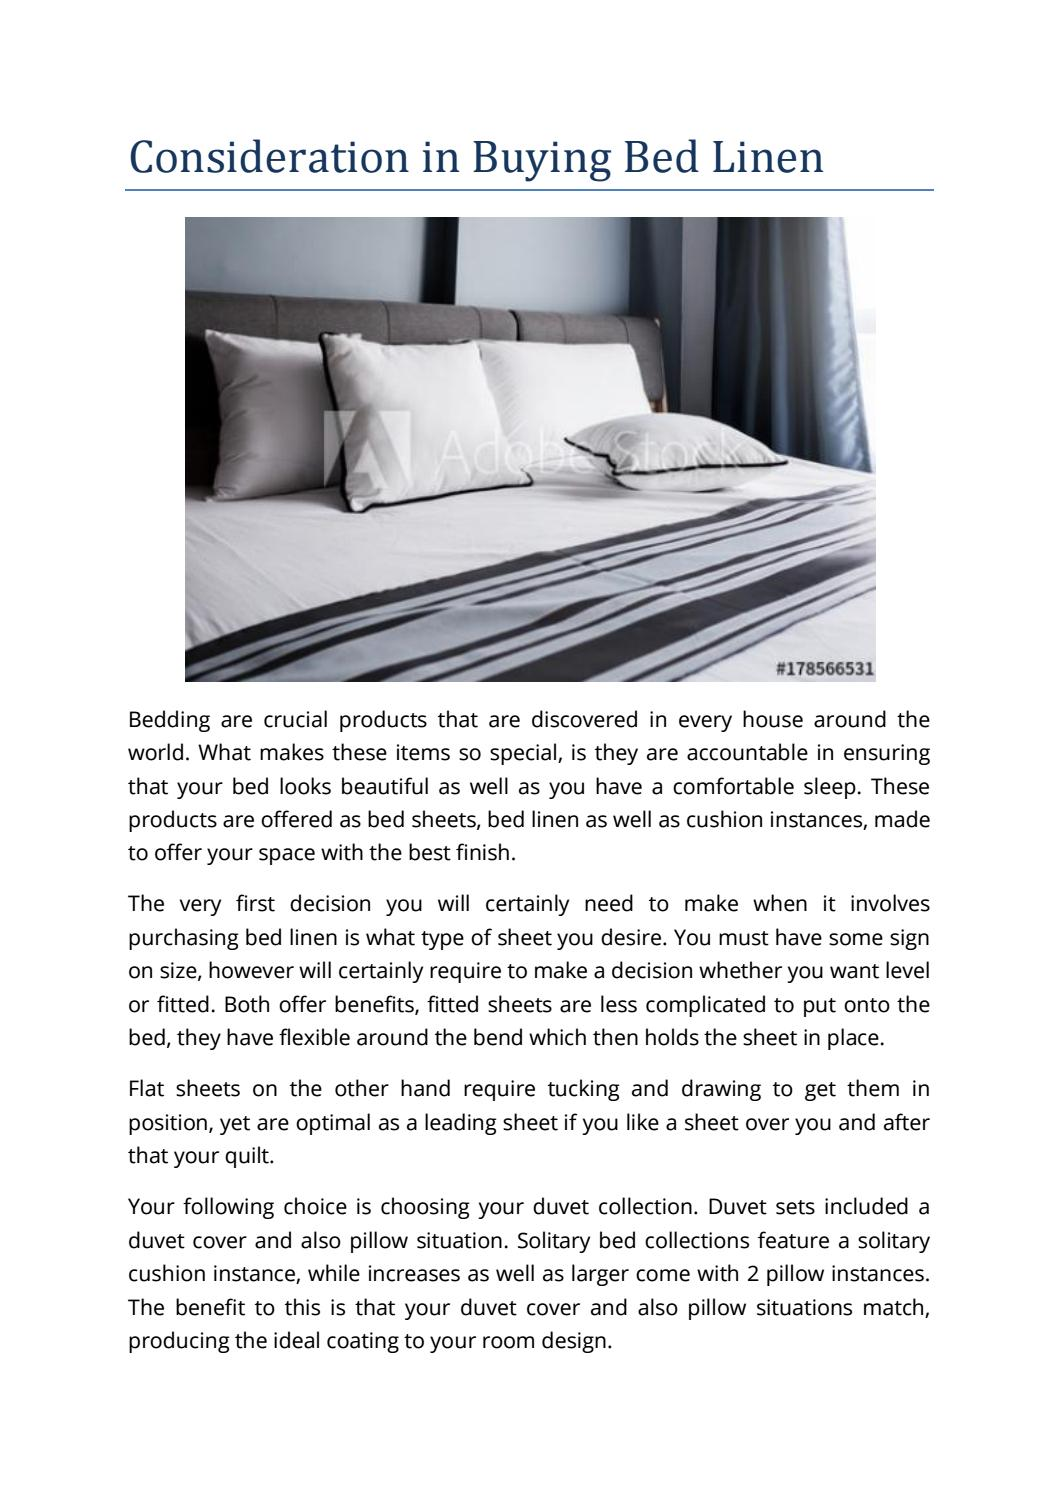 Consideration In Buying Bed Linen By Legasy Issuu,Old House Renovation Before And After In India